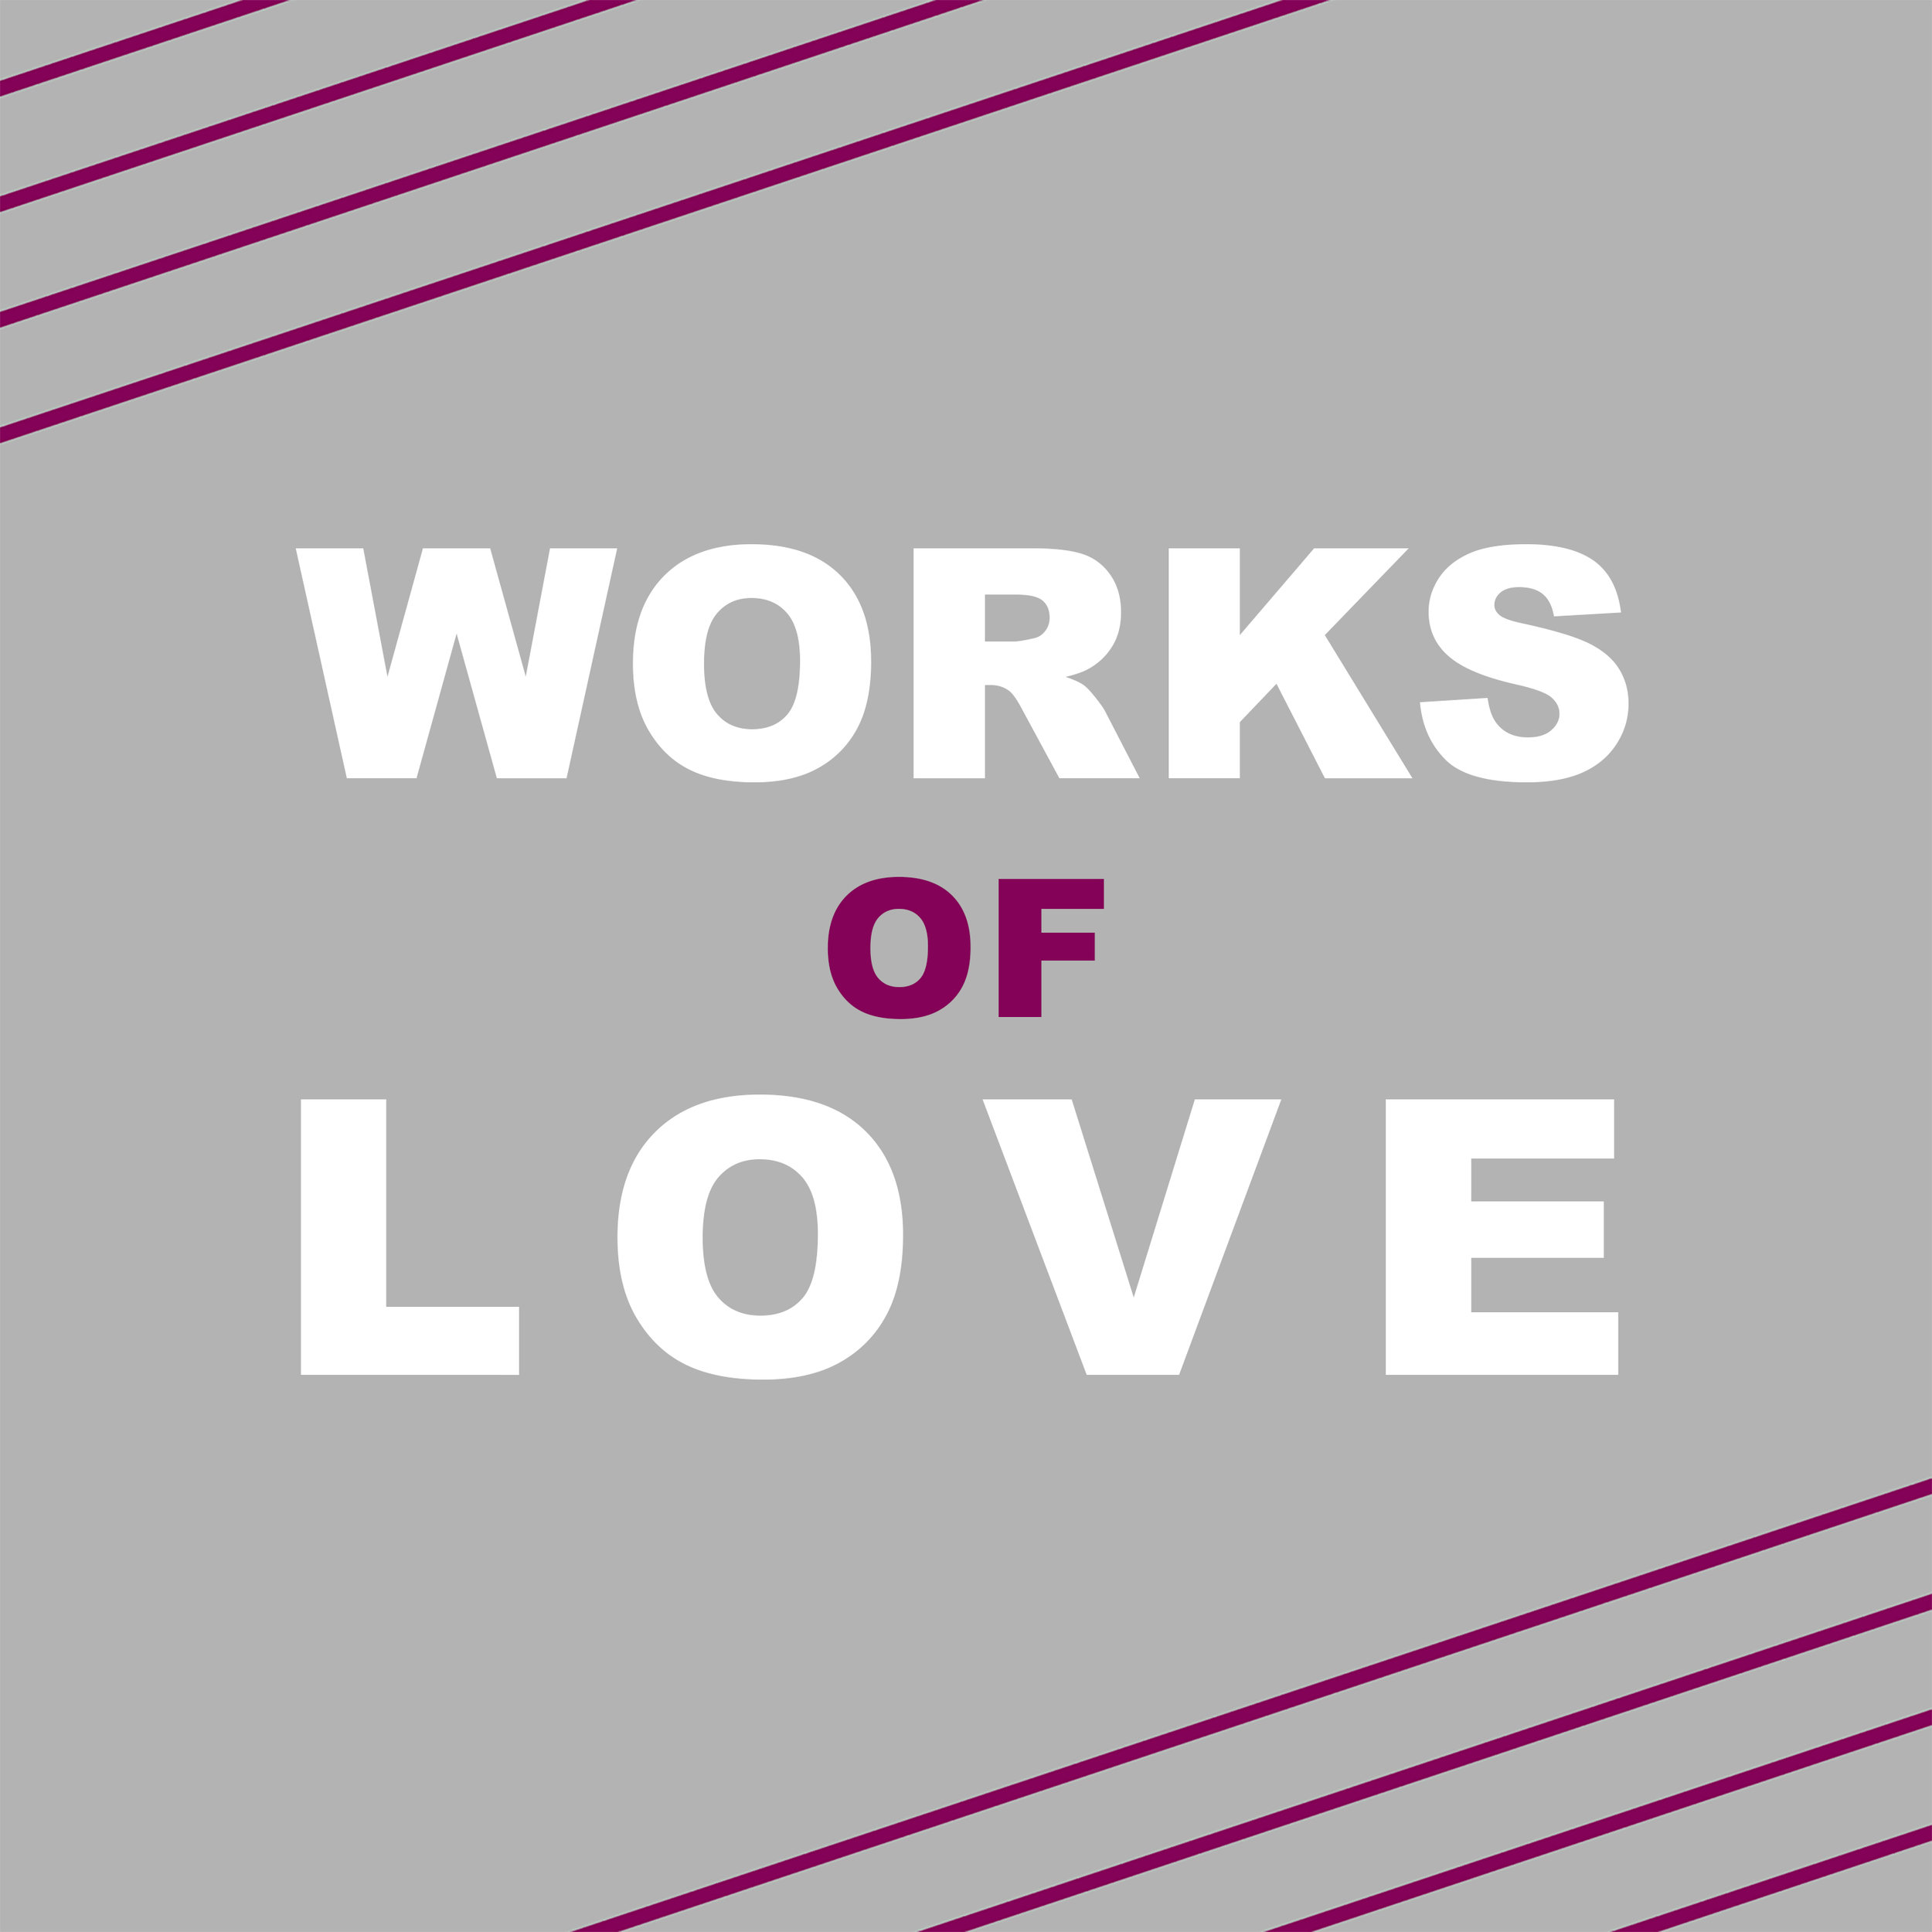 Works of Love.jpg